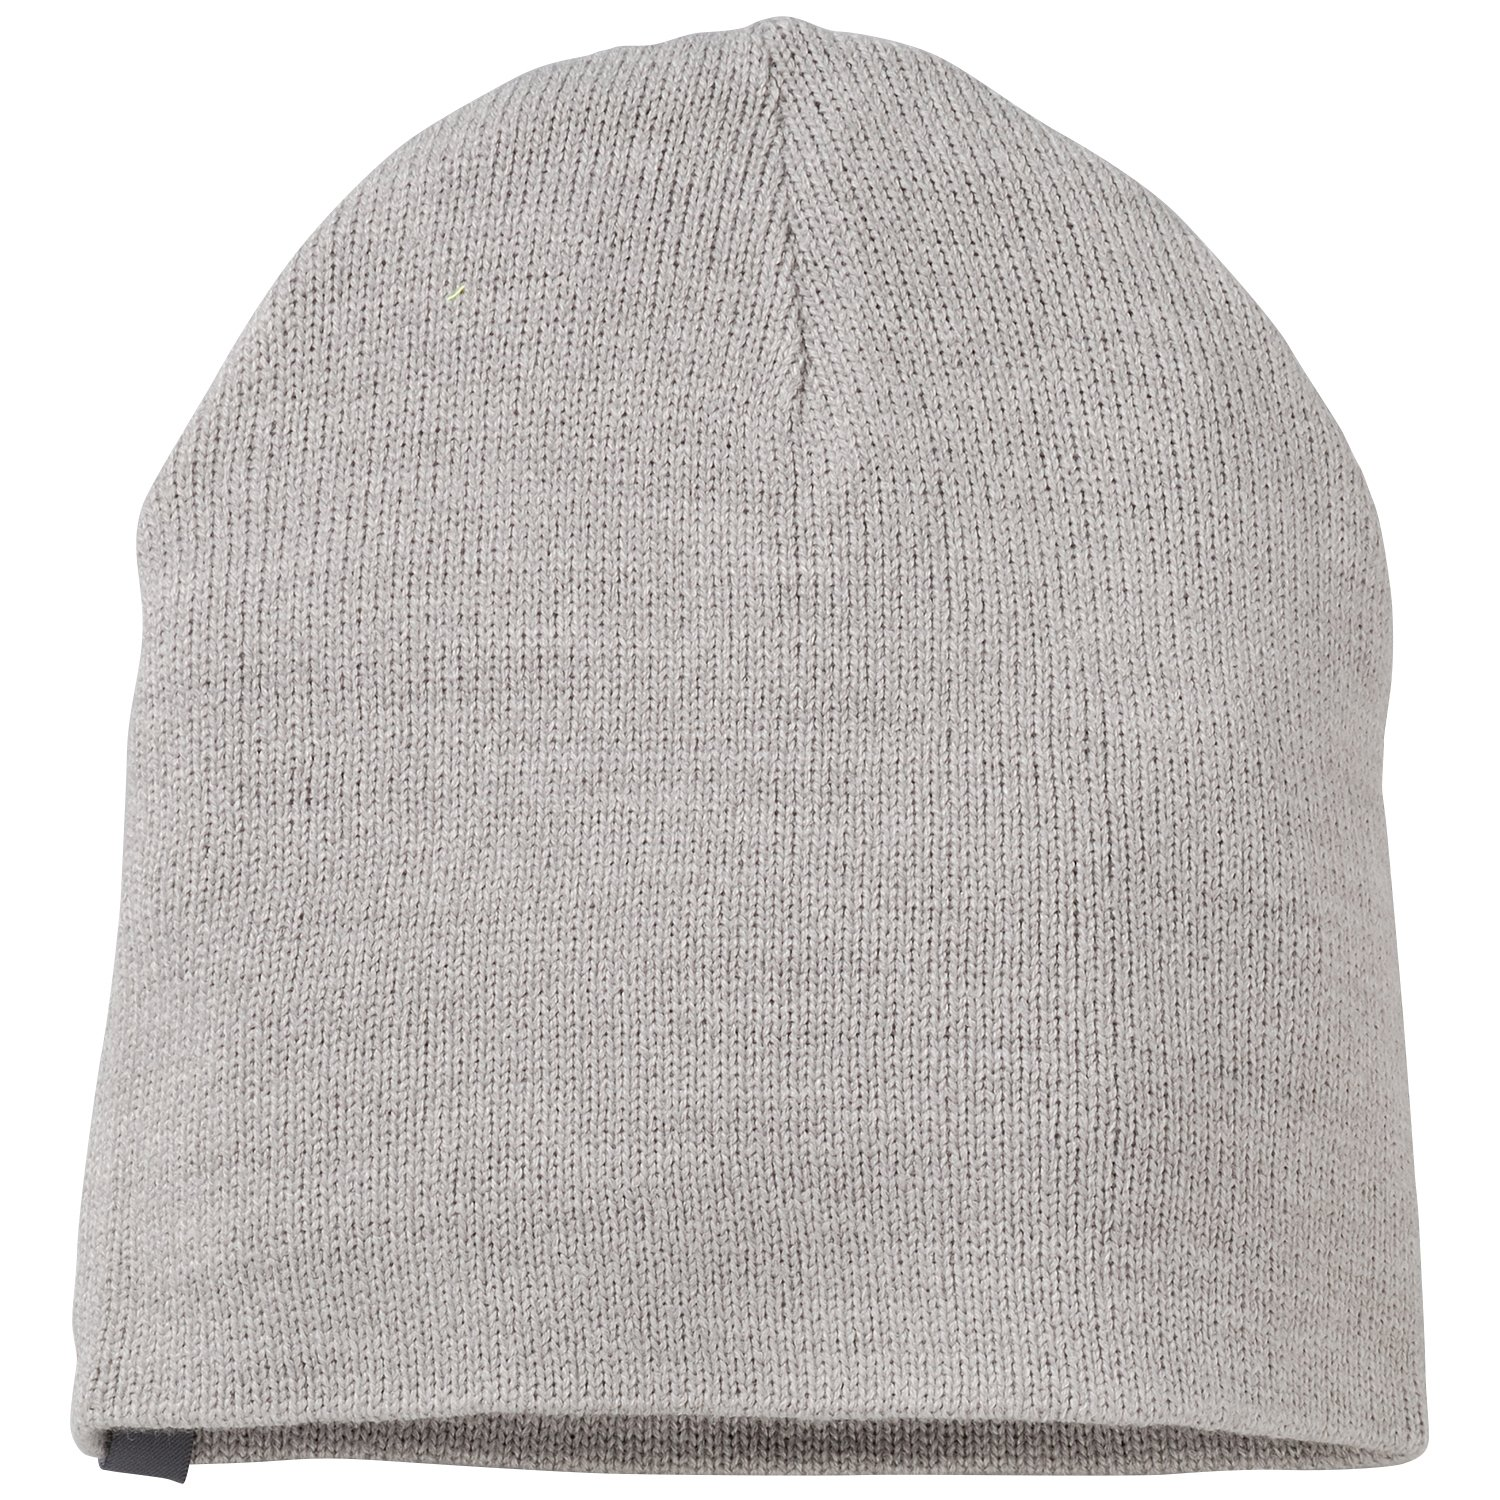 c29659d65d0 adidas PERF BEANIE - Caps for Men